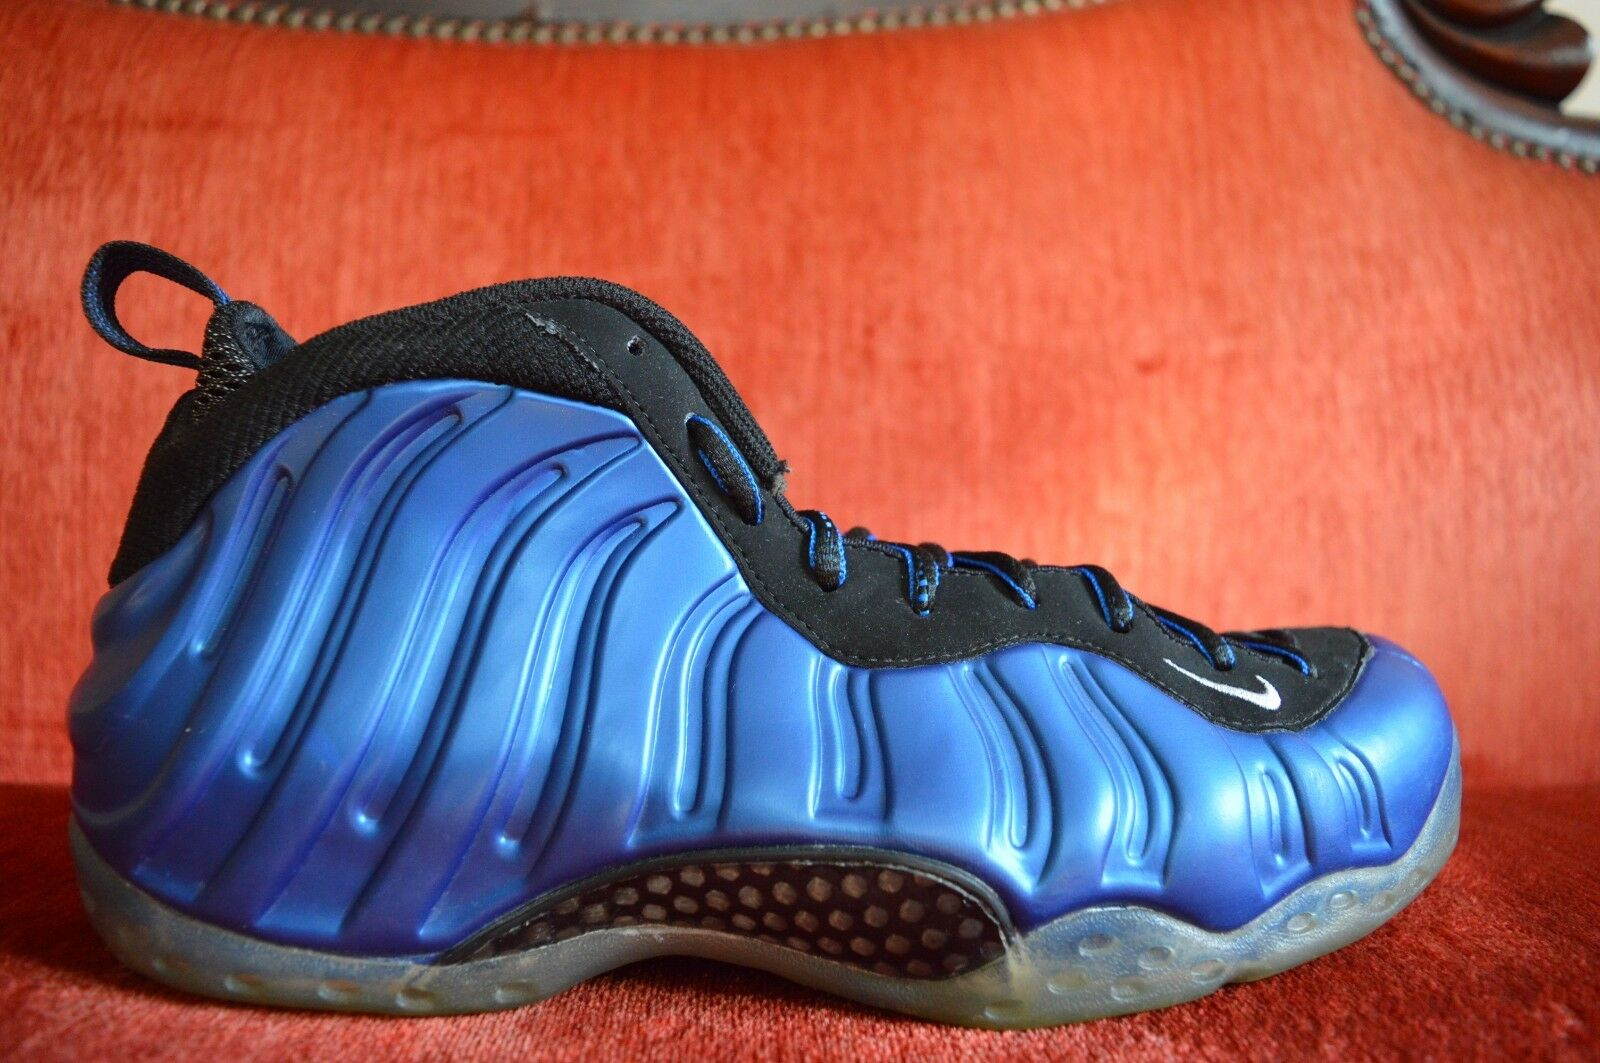 MENS NIKE AIR Max FOAMPOSITE ONE NEON ROYAL Size 9 314996 500 2010 OG